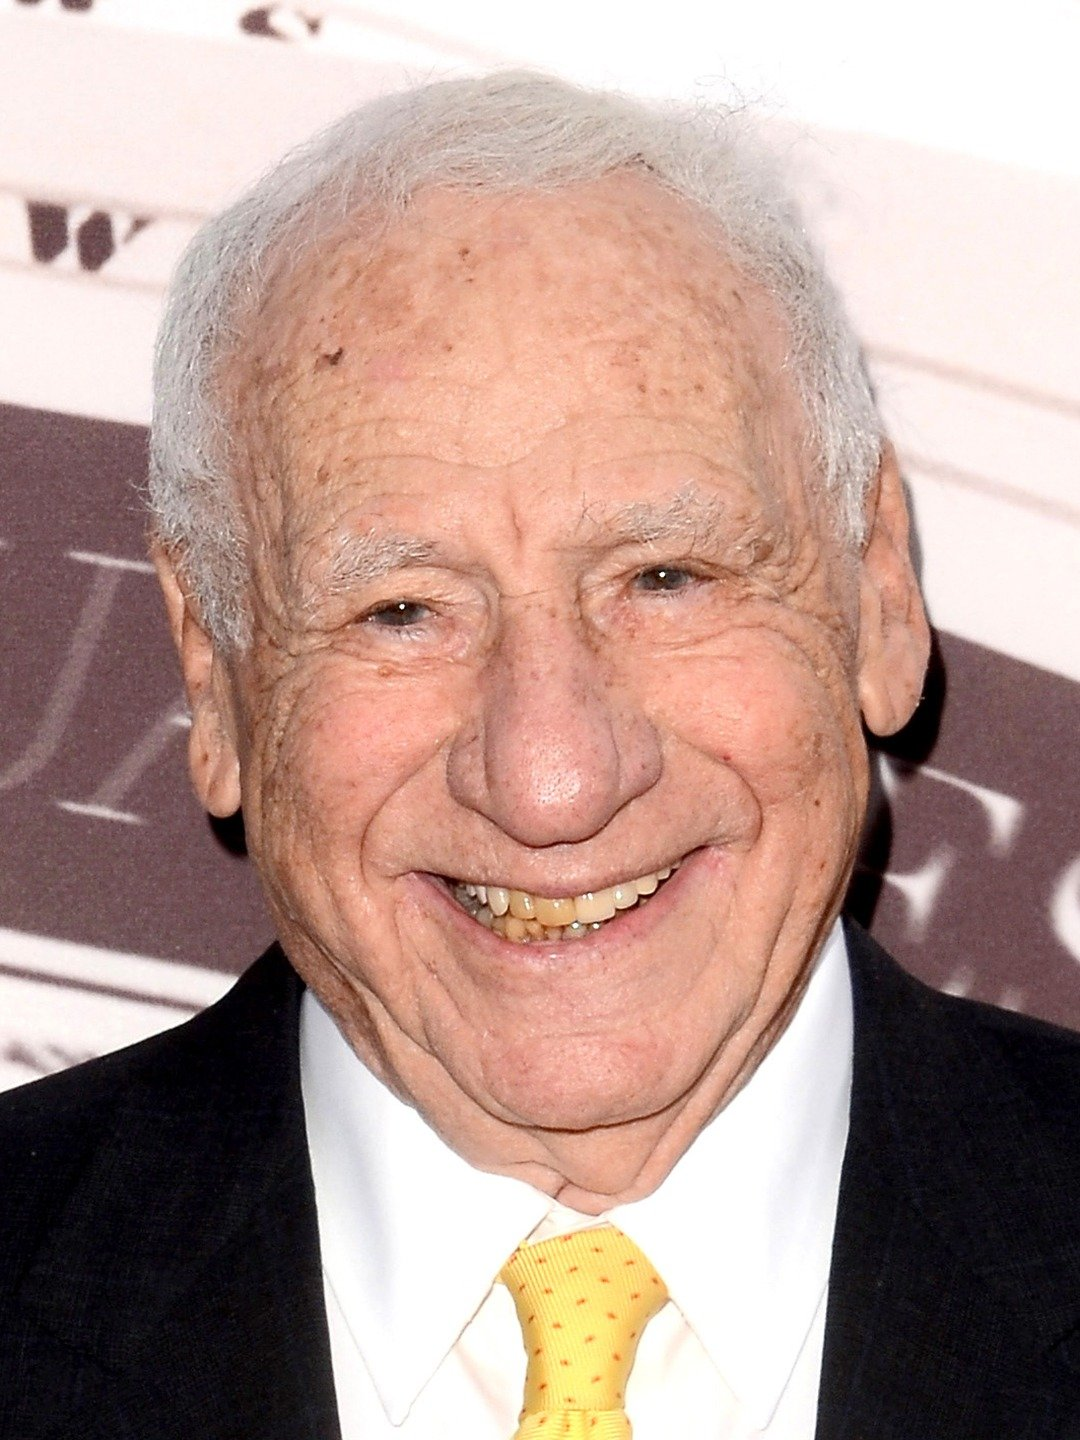 Image result for Mel brooks